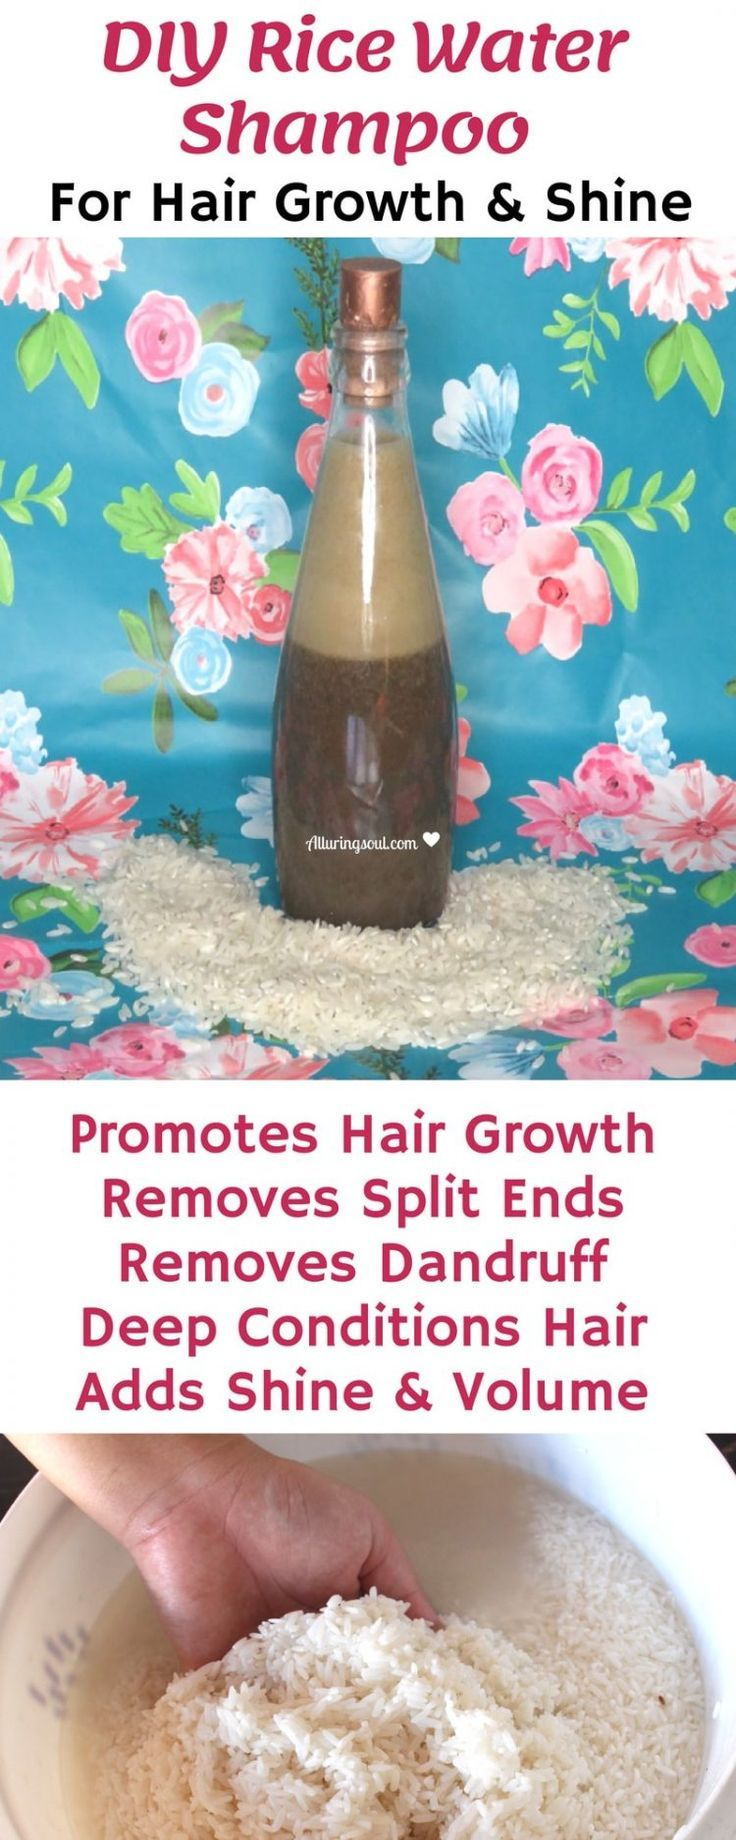 7 Benefits Of Rice Water For Hair + DIY Hair Growth